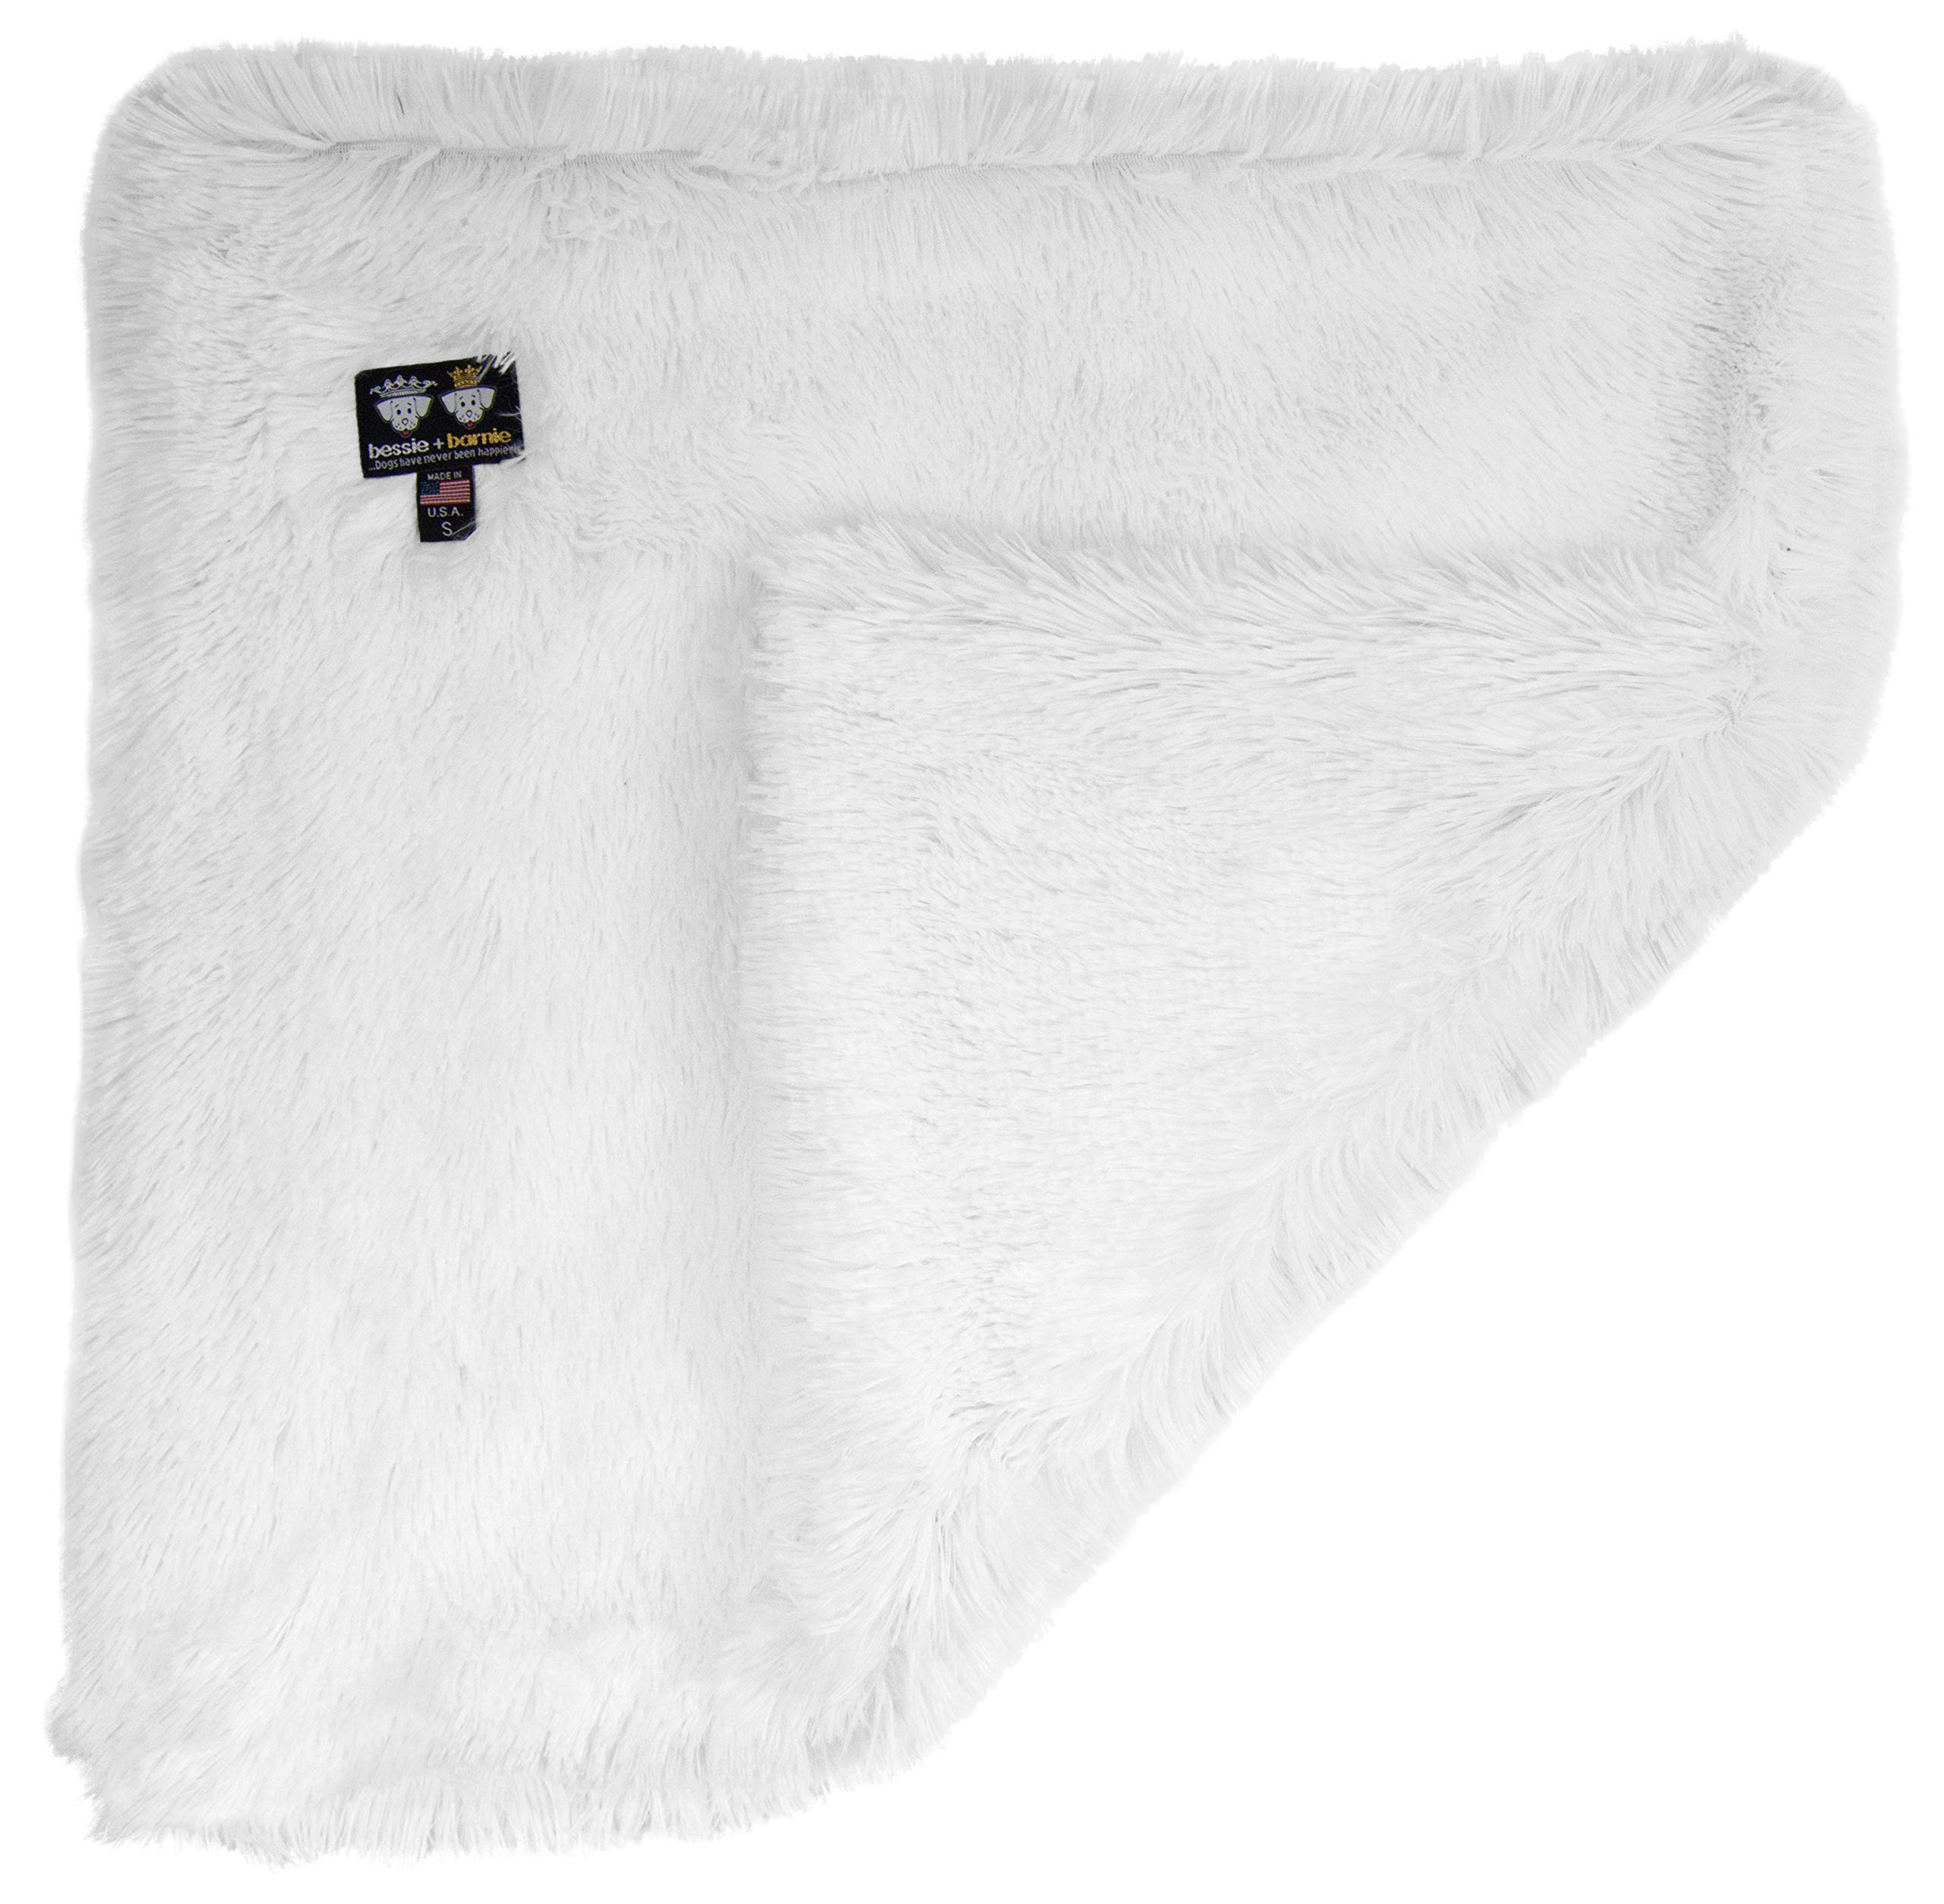 Bessie and Barnie Snow White Luxury Shag Ultra Plush Faux Fur Pet, Dog, Cat, Puppy Super Soft Reversible Blanket (Multiple Sizes), MD - 36'' x 28'' by Bessie and Barnie